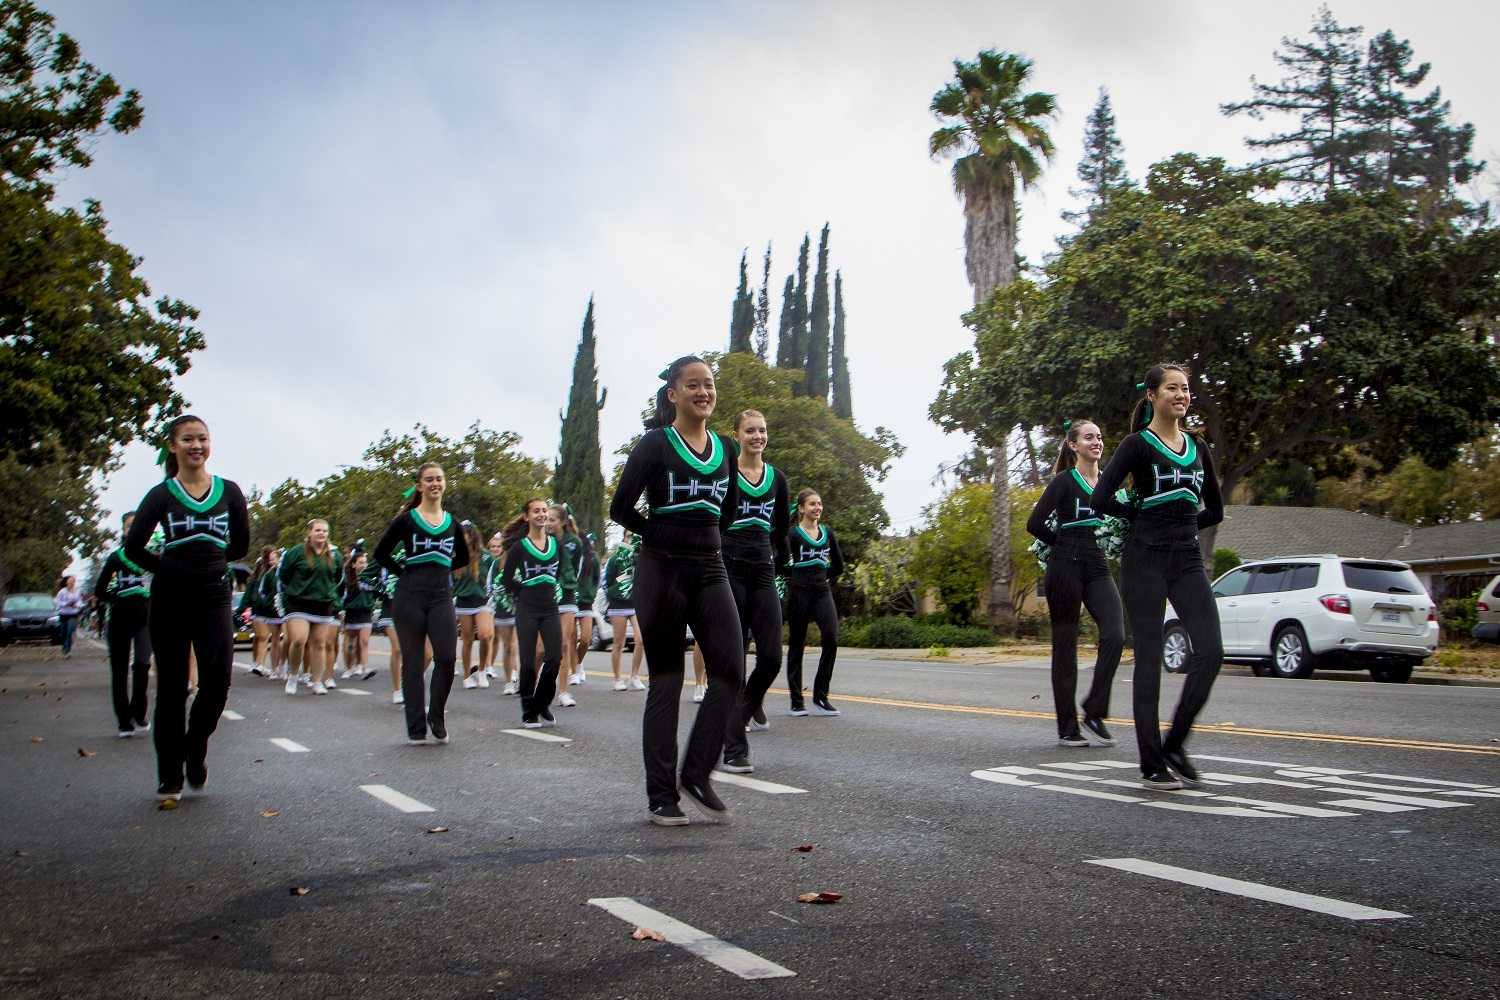 The+Equestriettes+march+in+front+of+the+classes+during+the+Homecoming+parade